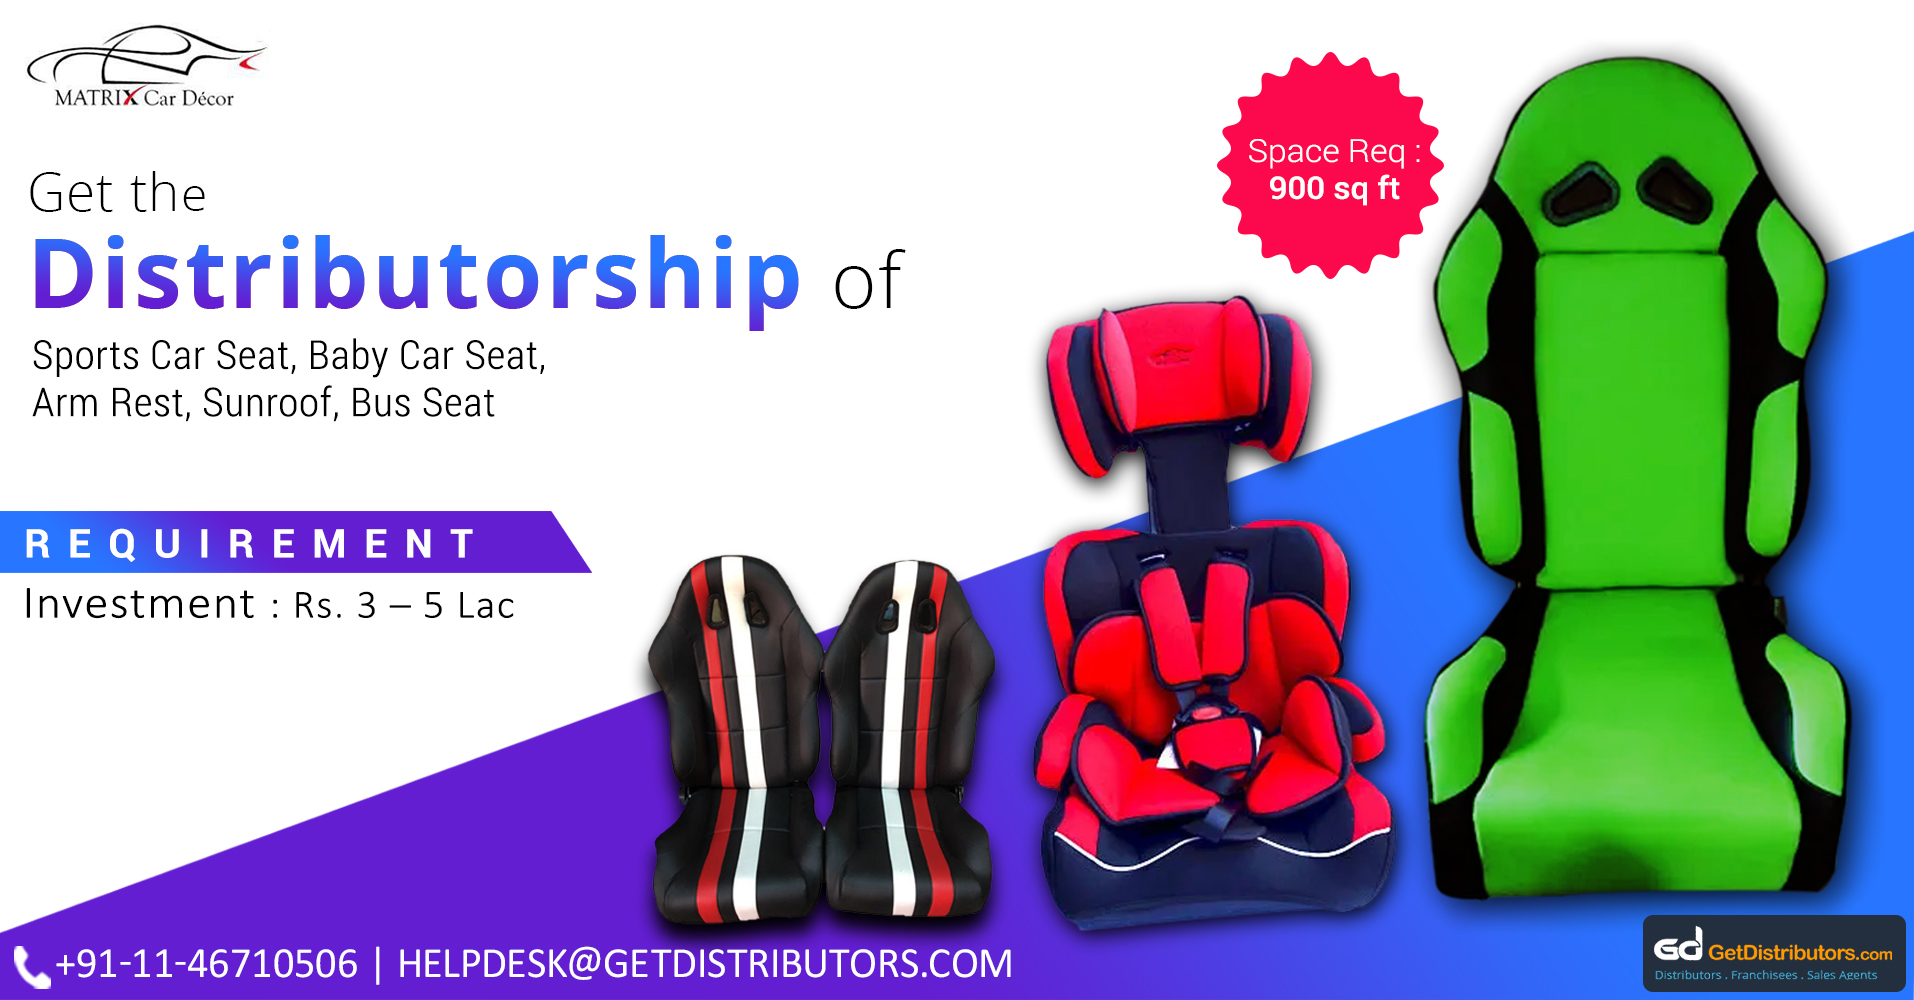 Inventively Designed, Comfortable & Highly Durably Car Seating Solutions